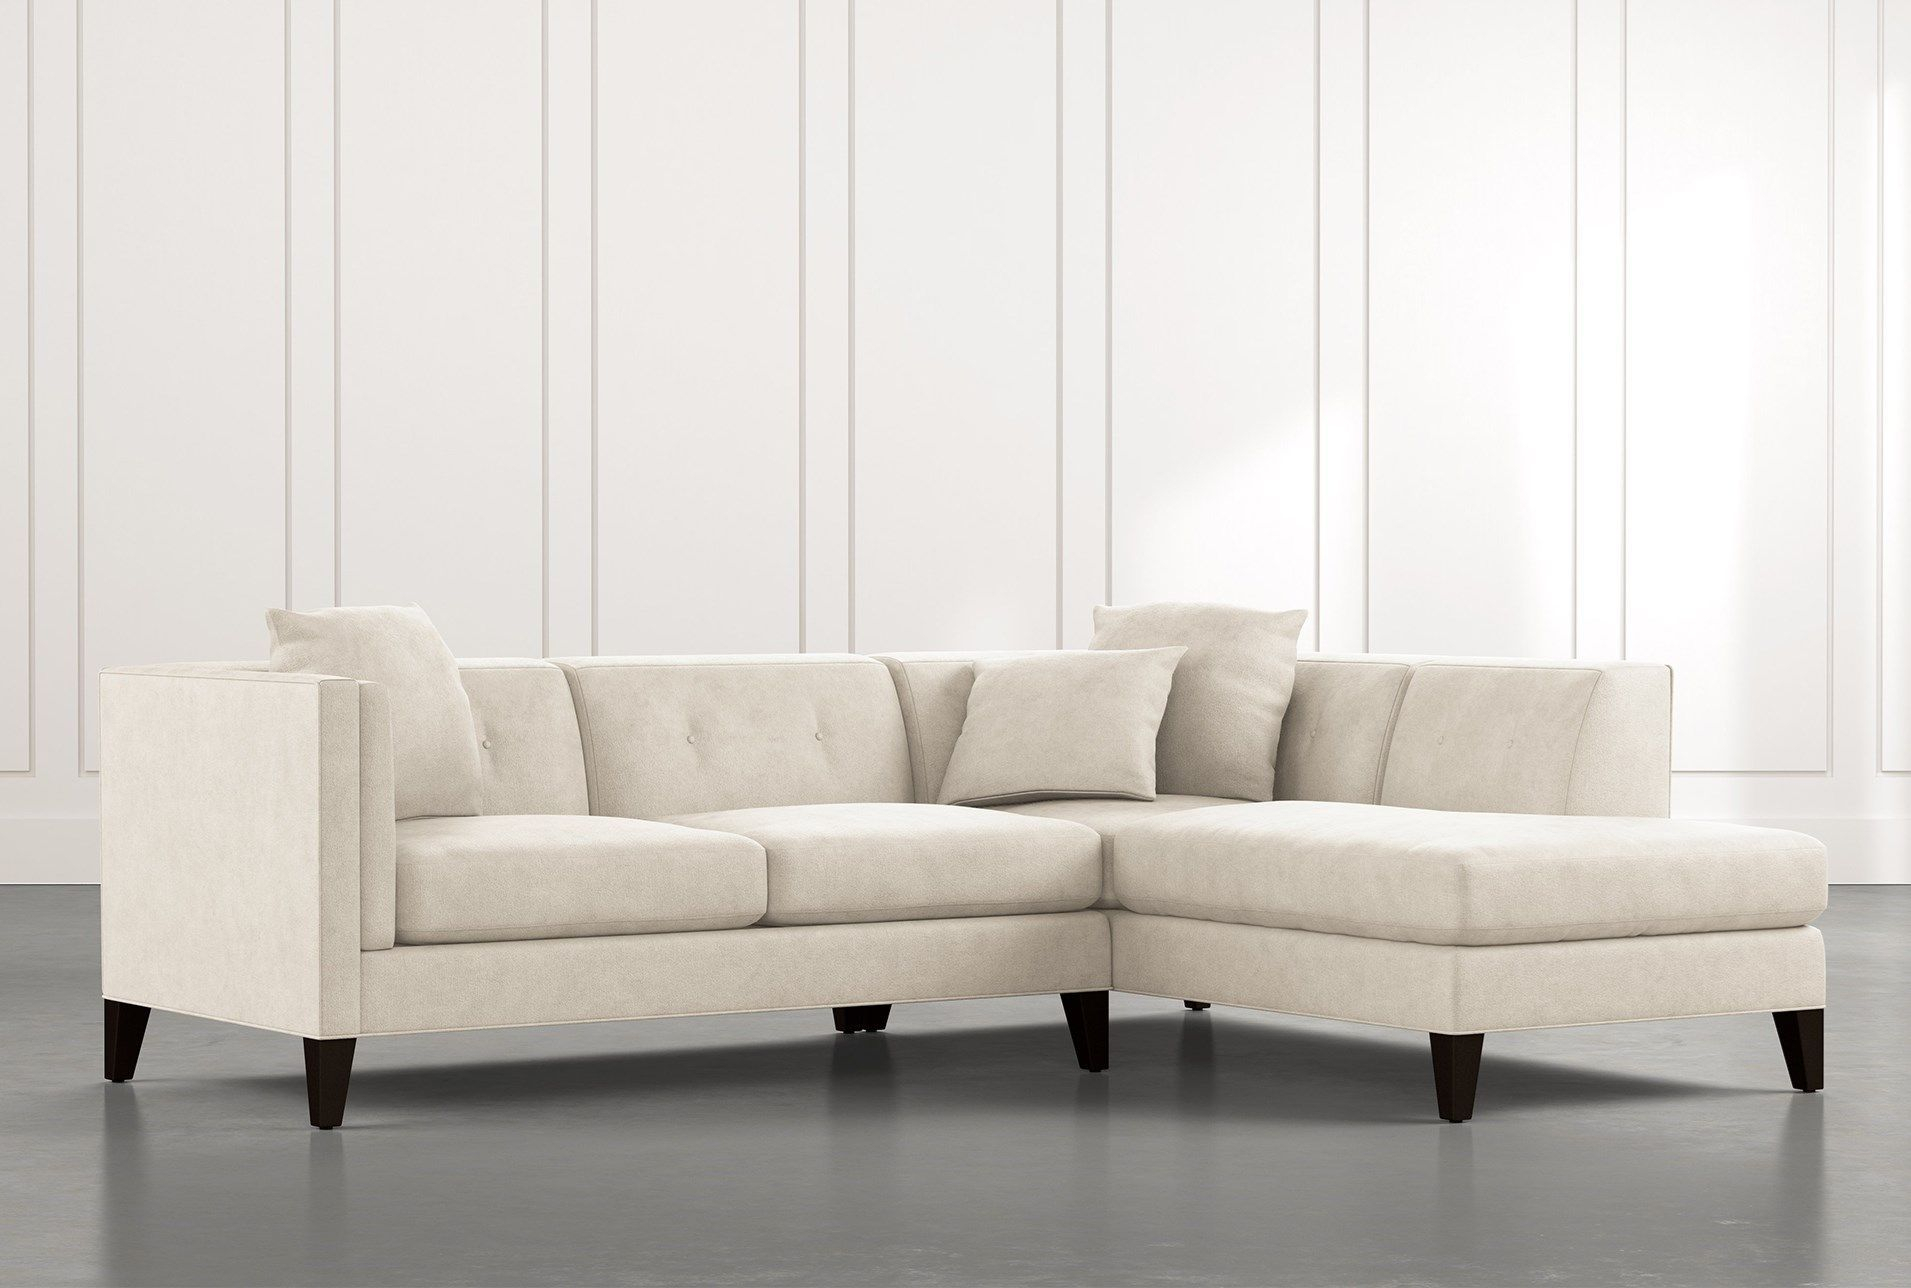 Avery Ii Beige 2 Piece Sectional Sofa With Right Arm Inside Avery 2 Piece Sectionals With Laf Armless Chaise (View 5 of 15)